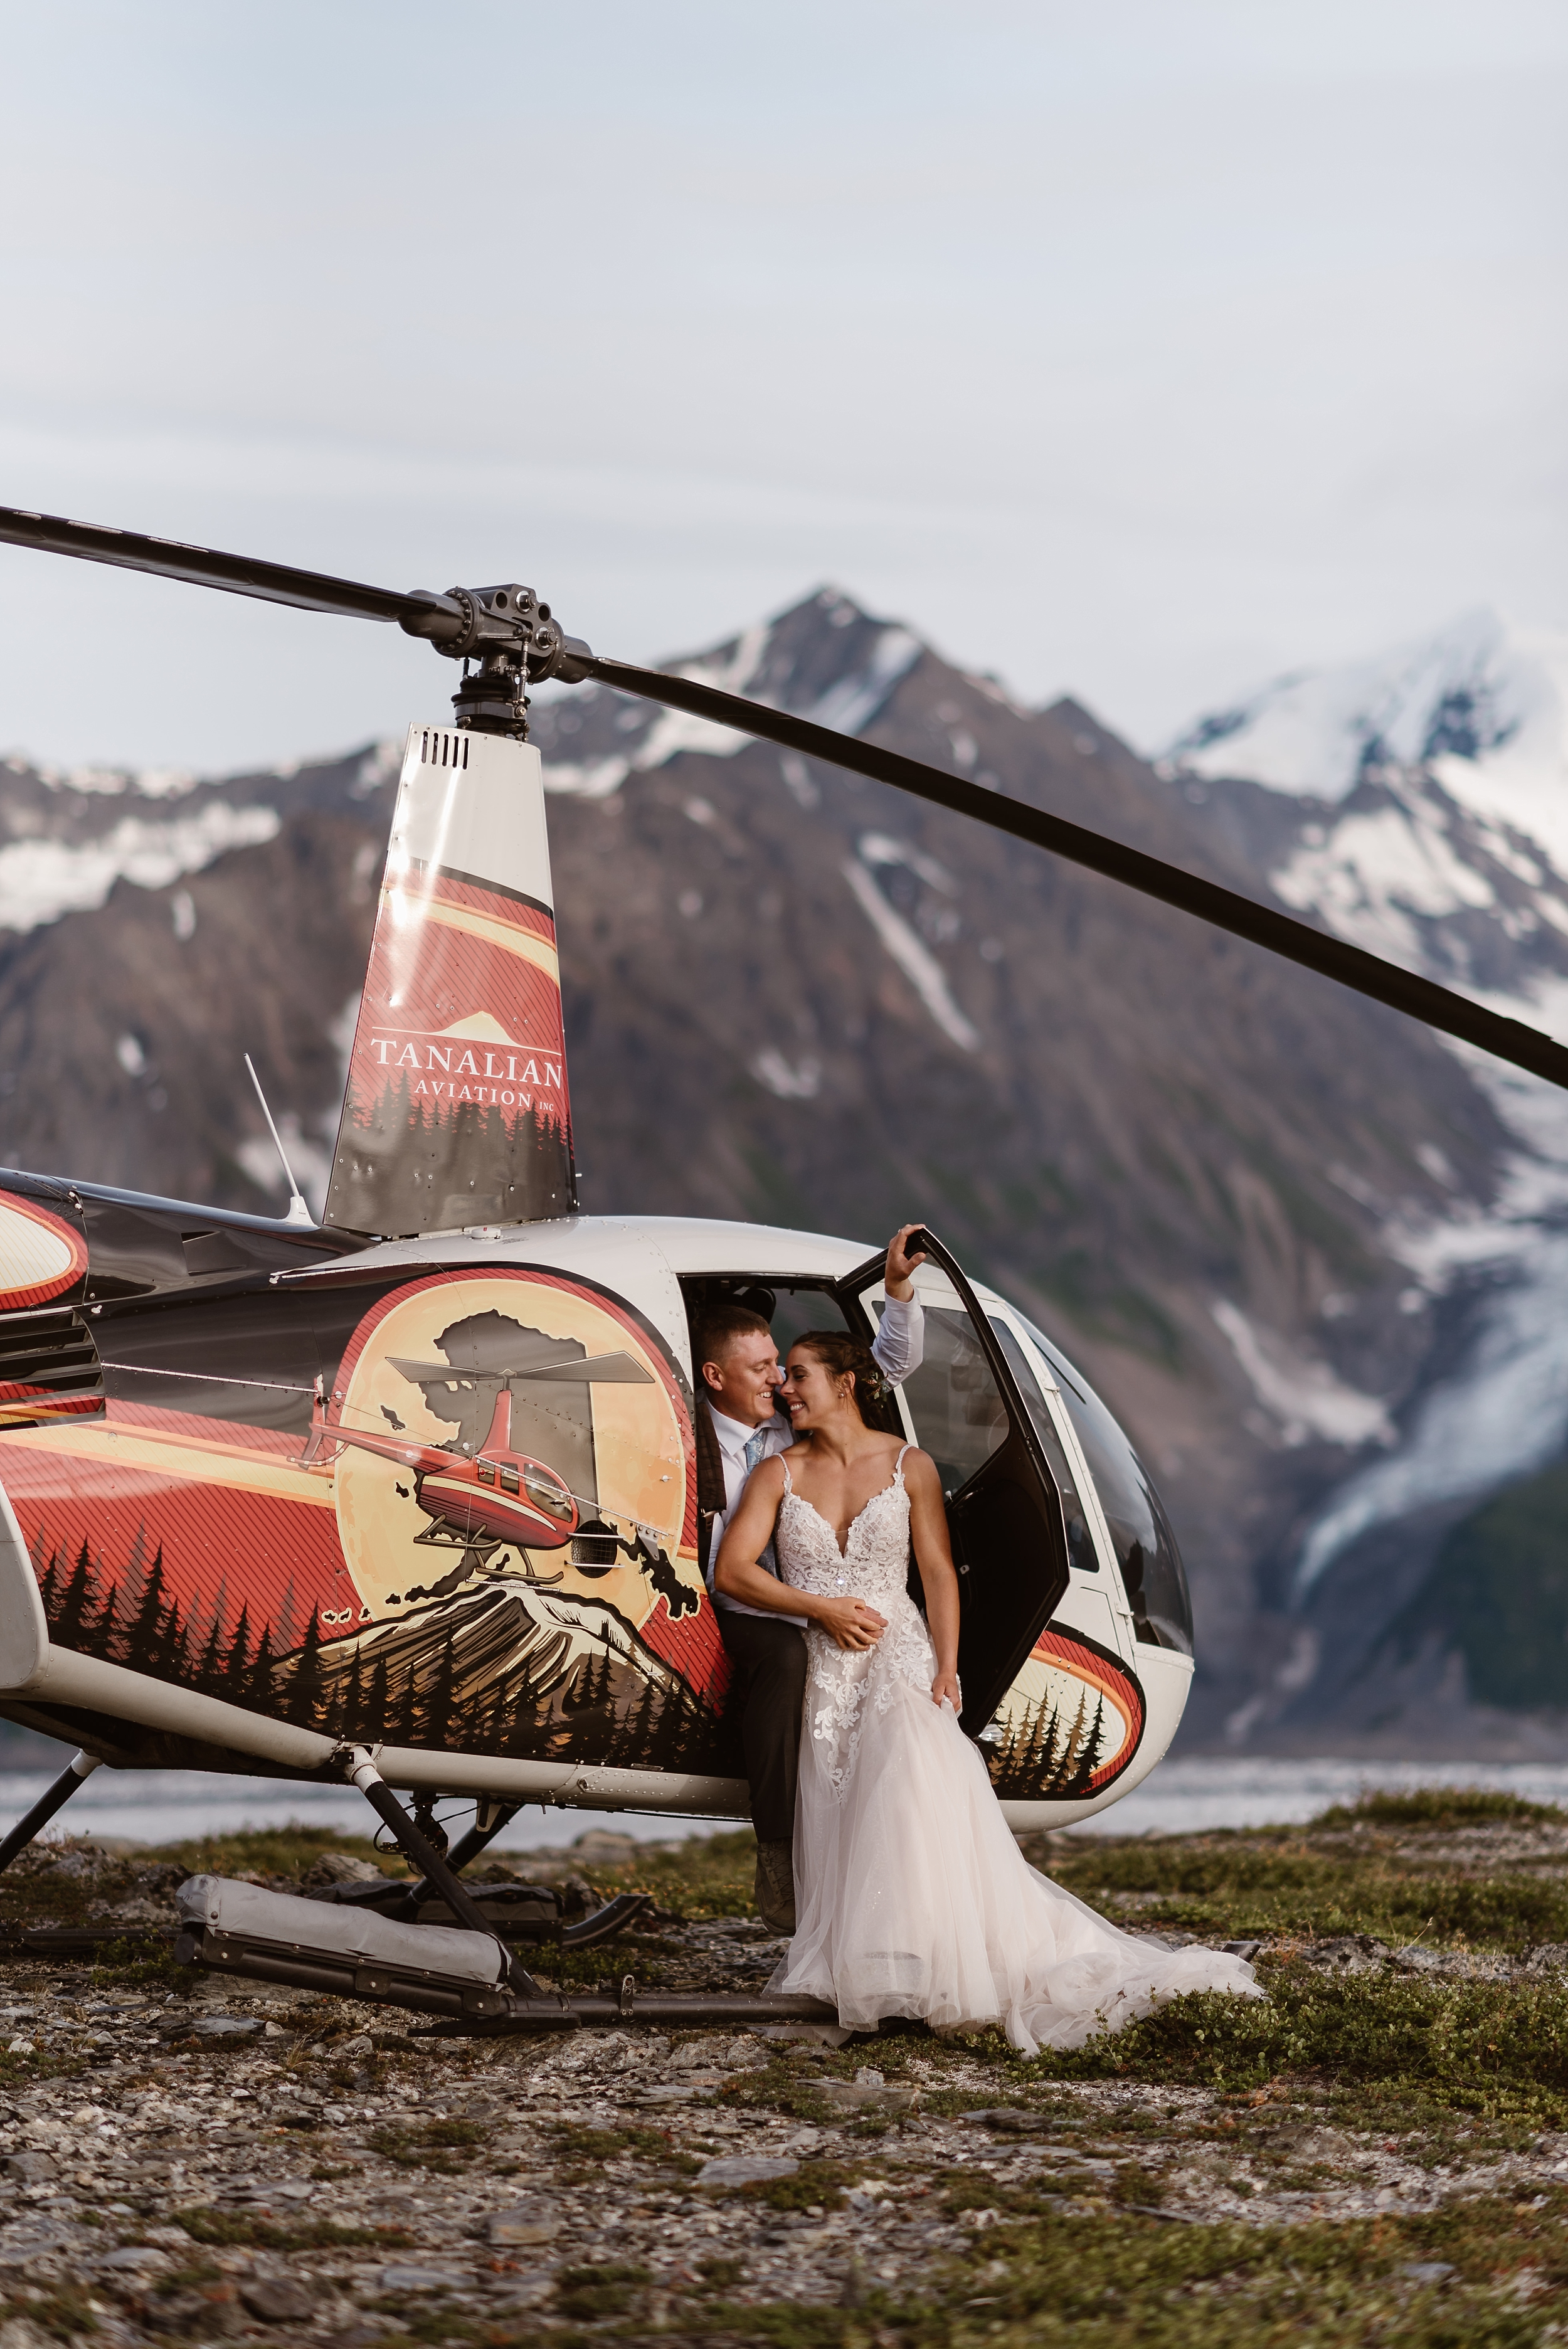 Jordyn and Connor sit halfway inside the helicopter as the nuzzle and closely embrace. Jordyn, sitting on Connor's lap, leans in close to Connor as he holds his hand on the helicopter door. The helicopter is parked on a rocky, green mountainside in front of an enormous mountain with a glacial peak in these elopement photos captured by Adventure Instead, a wedding photographer.